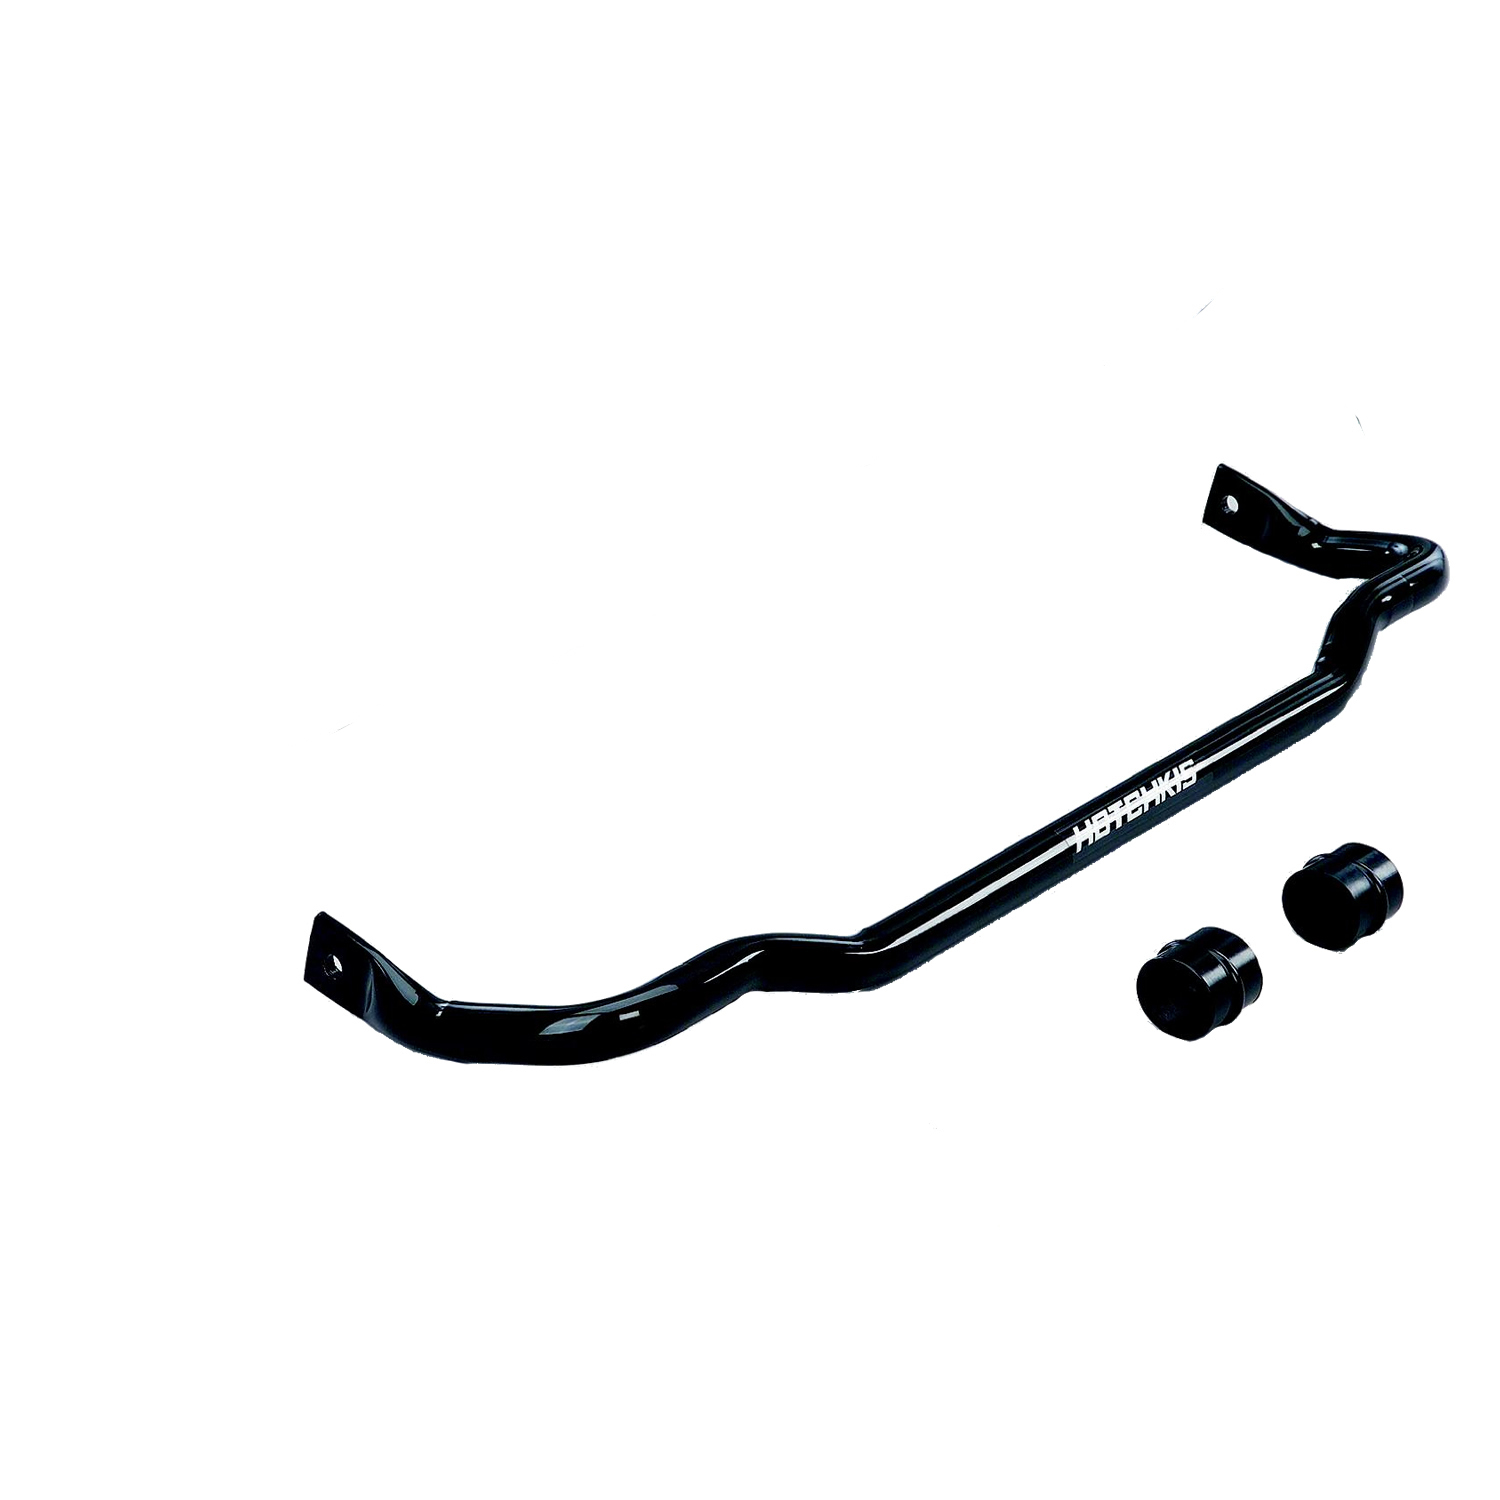 2013+ Dodge Challenger Front Sway Bar Set from Hotchkis Sport Suspension